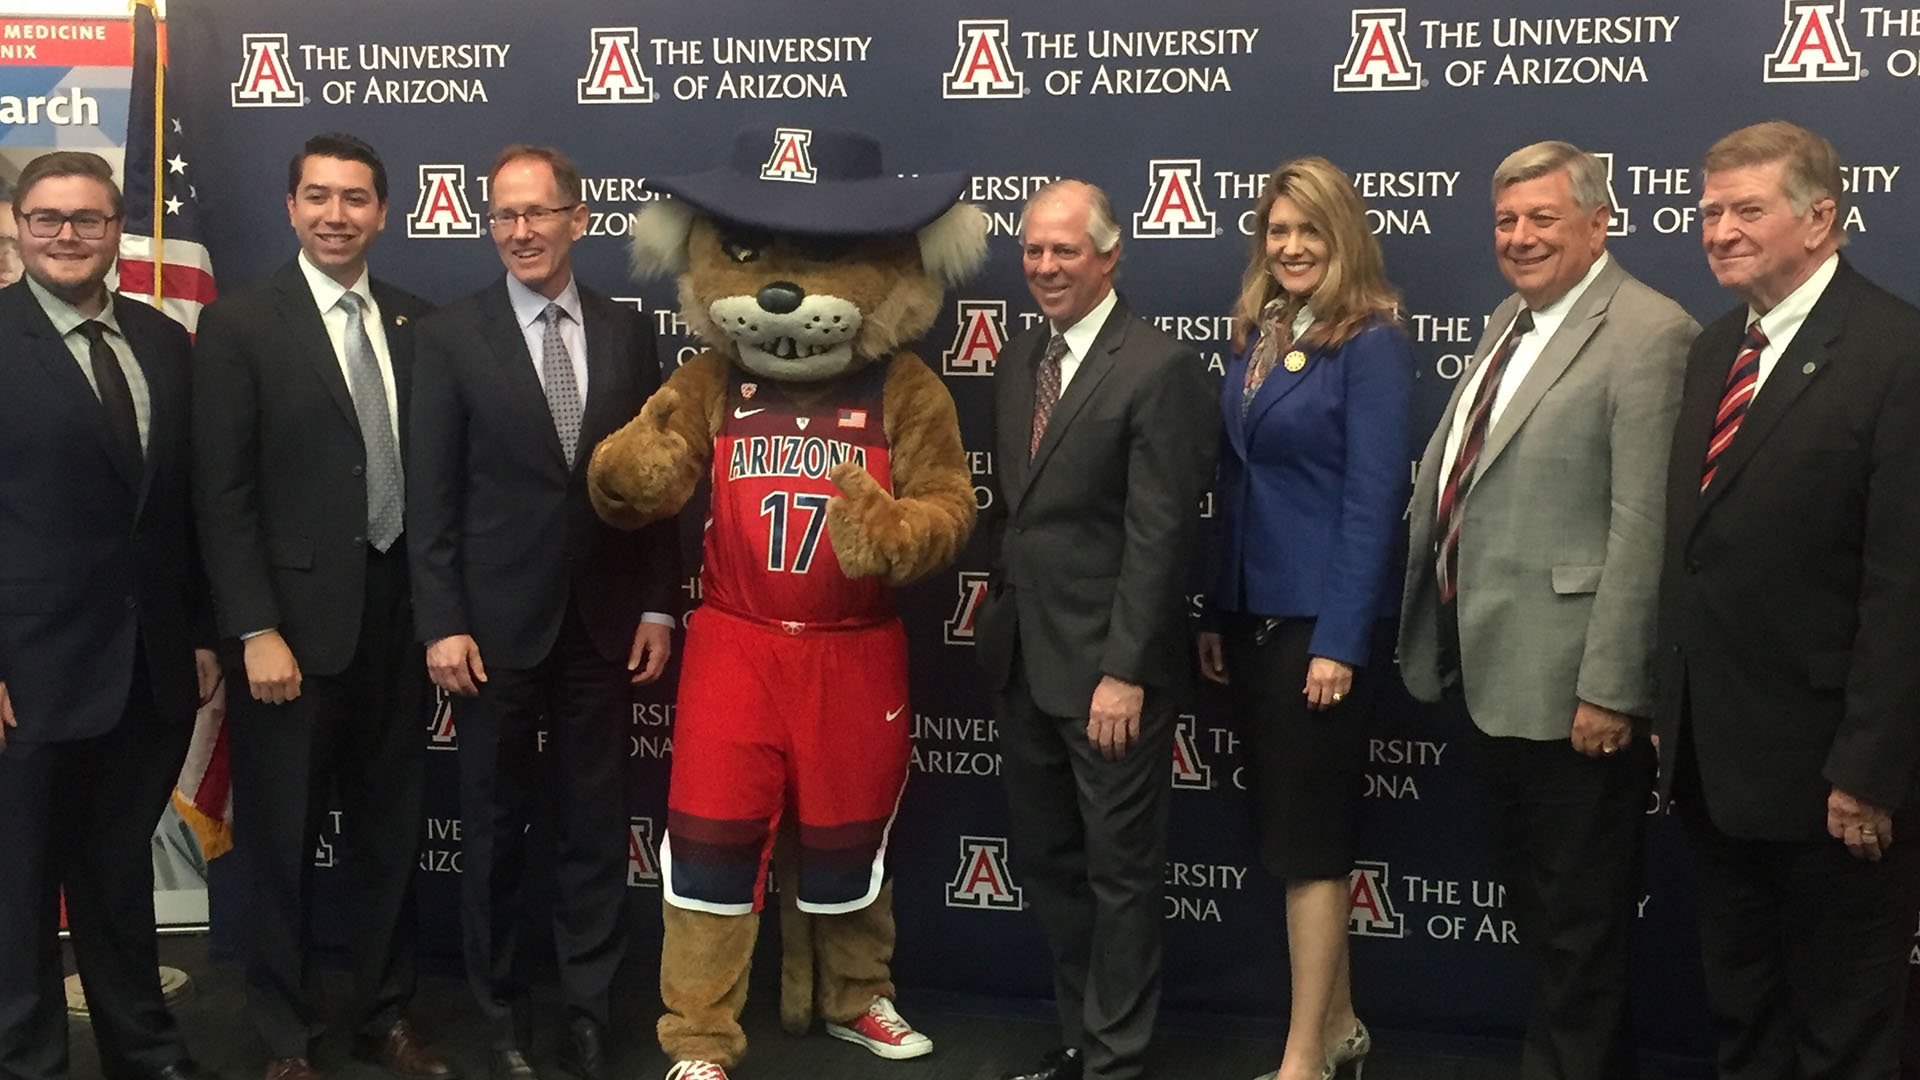 Robert Clayton Robbins, fourth from the right, poses with the University of Arizona mascot and members of the Arizona Board of Regents at the press conference announcing the vote to make him a finalist for UA president.